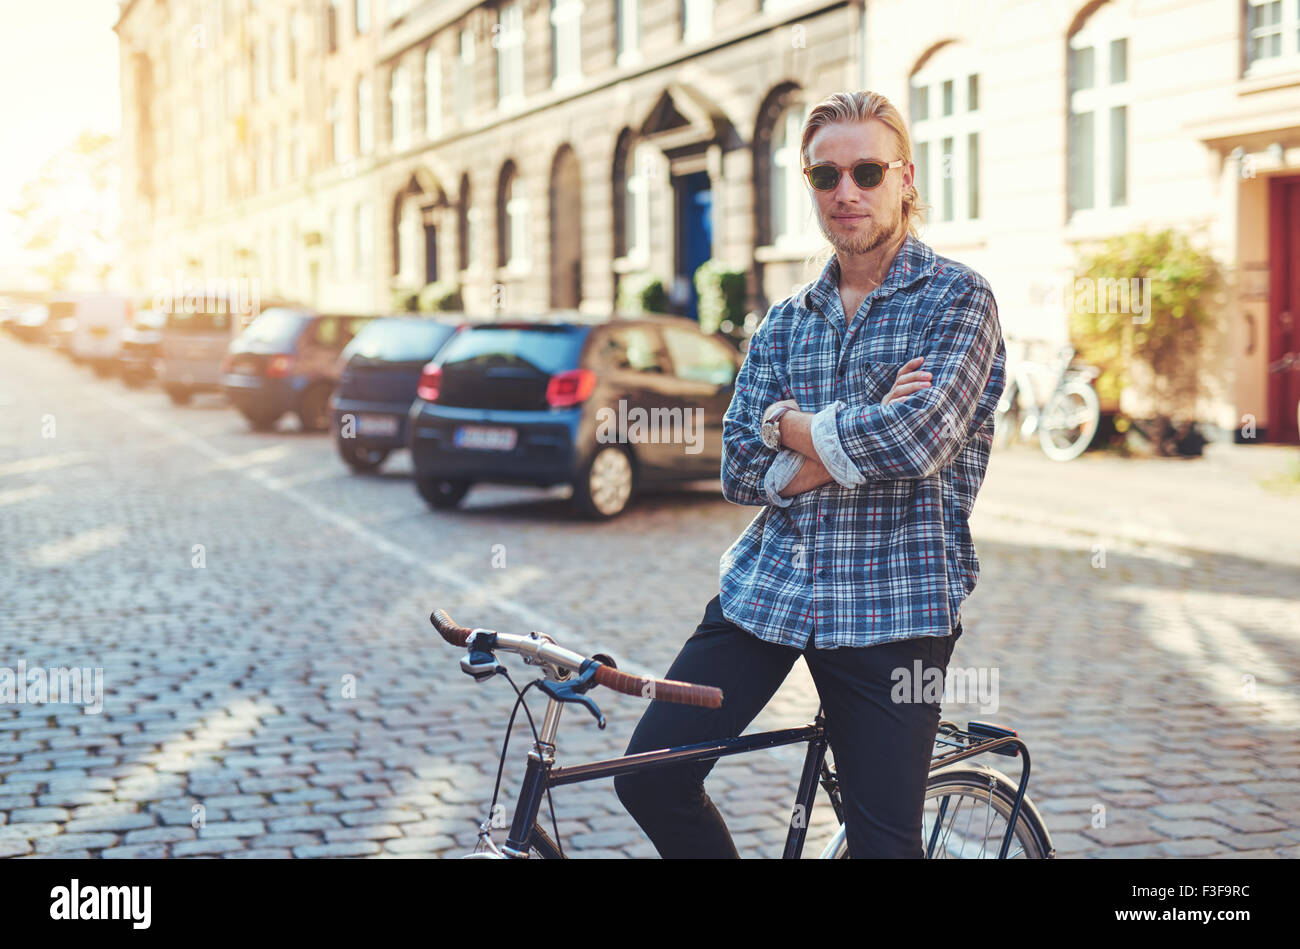 Portrait of man on his bike with arms crossed looking stylish. City lifestyle - Stock Image